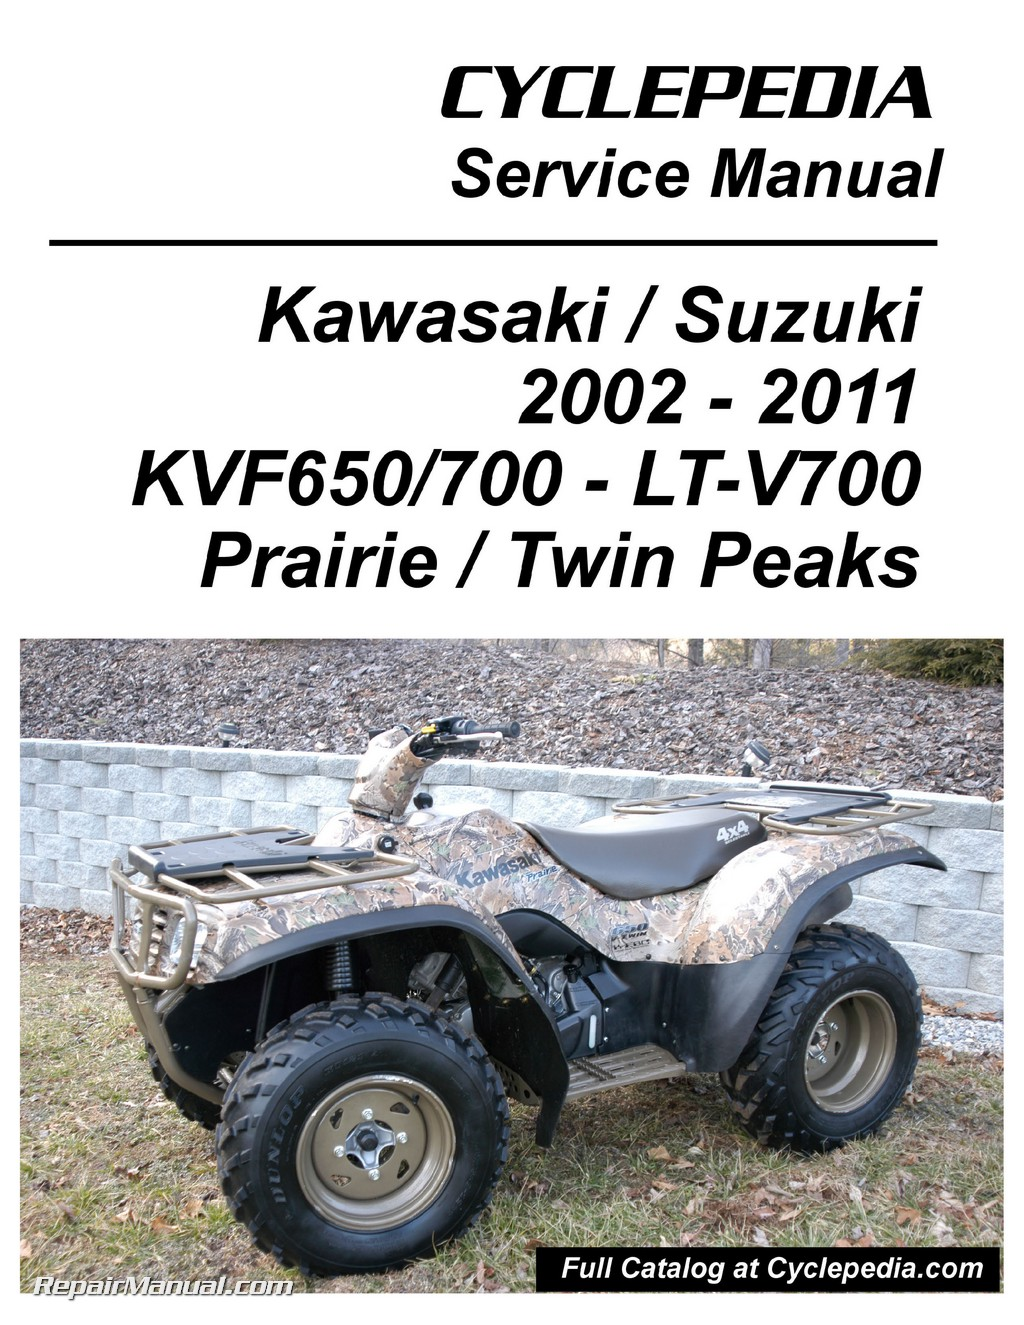 hight resolution of wrg 4274 kawasaki kvf 650 wiring diagram kawasaki kvf650 brute force kvf650 kvf700 prairie suzuki